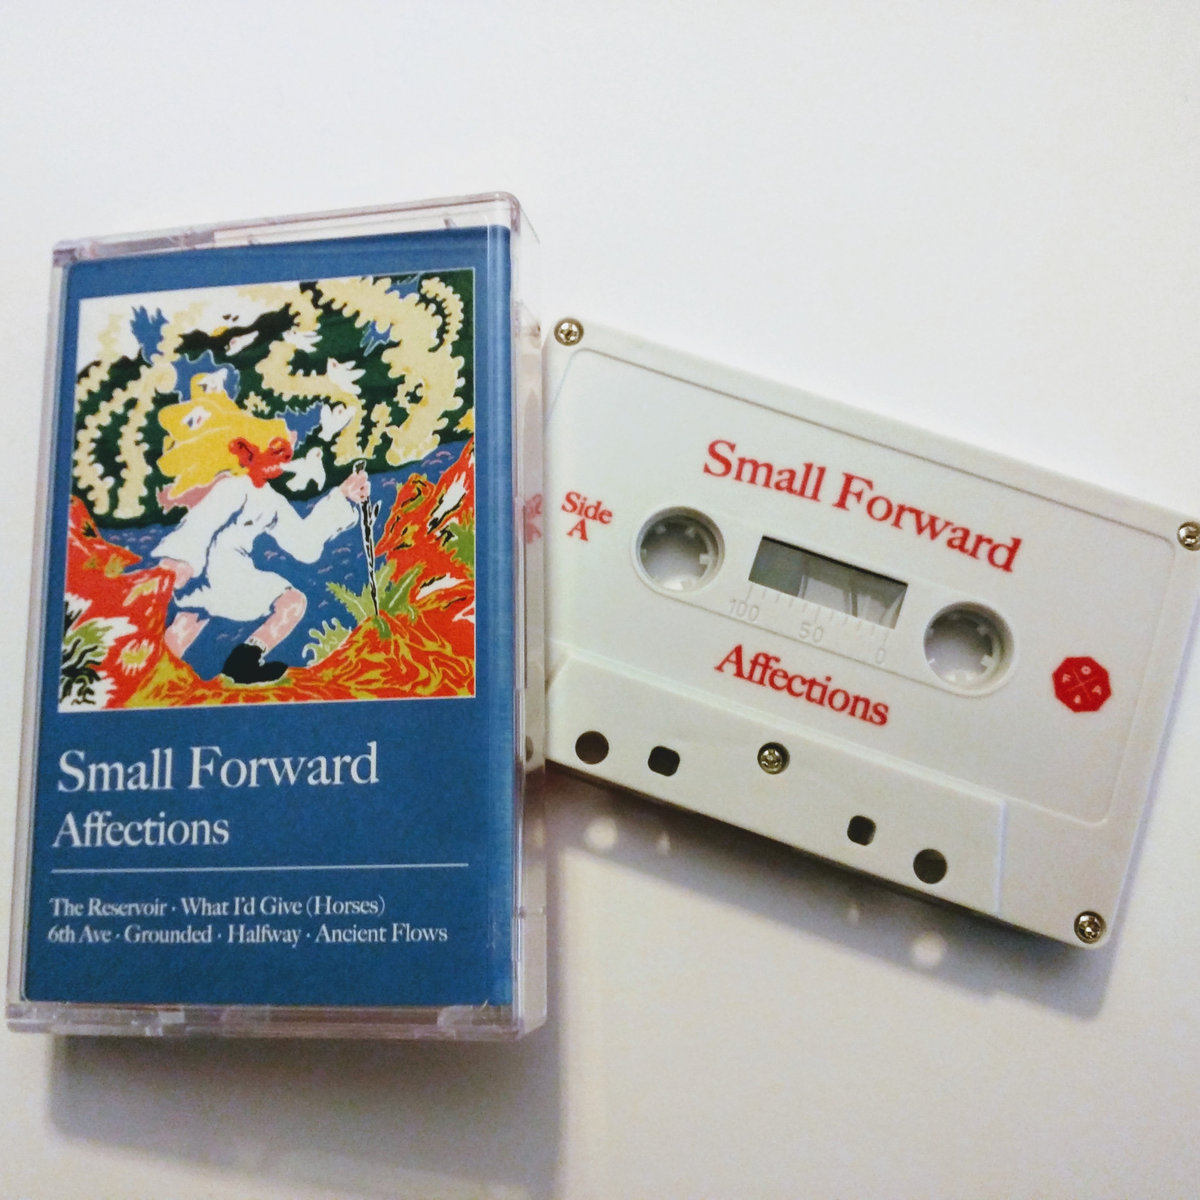 [Sold Out] Small Forward - Affections (Forged Artifacts)